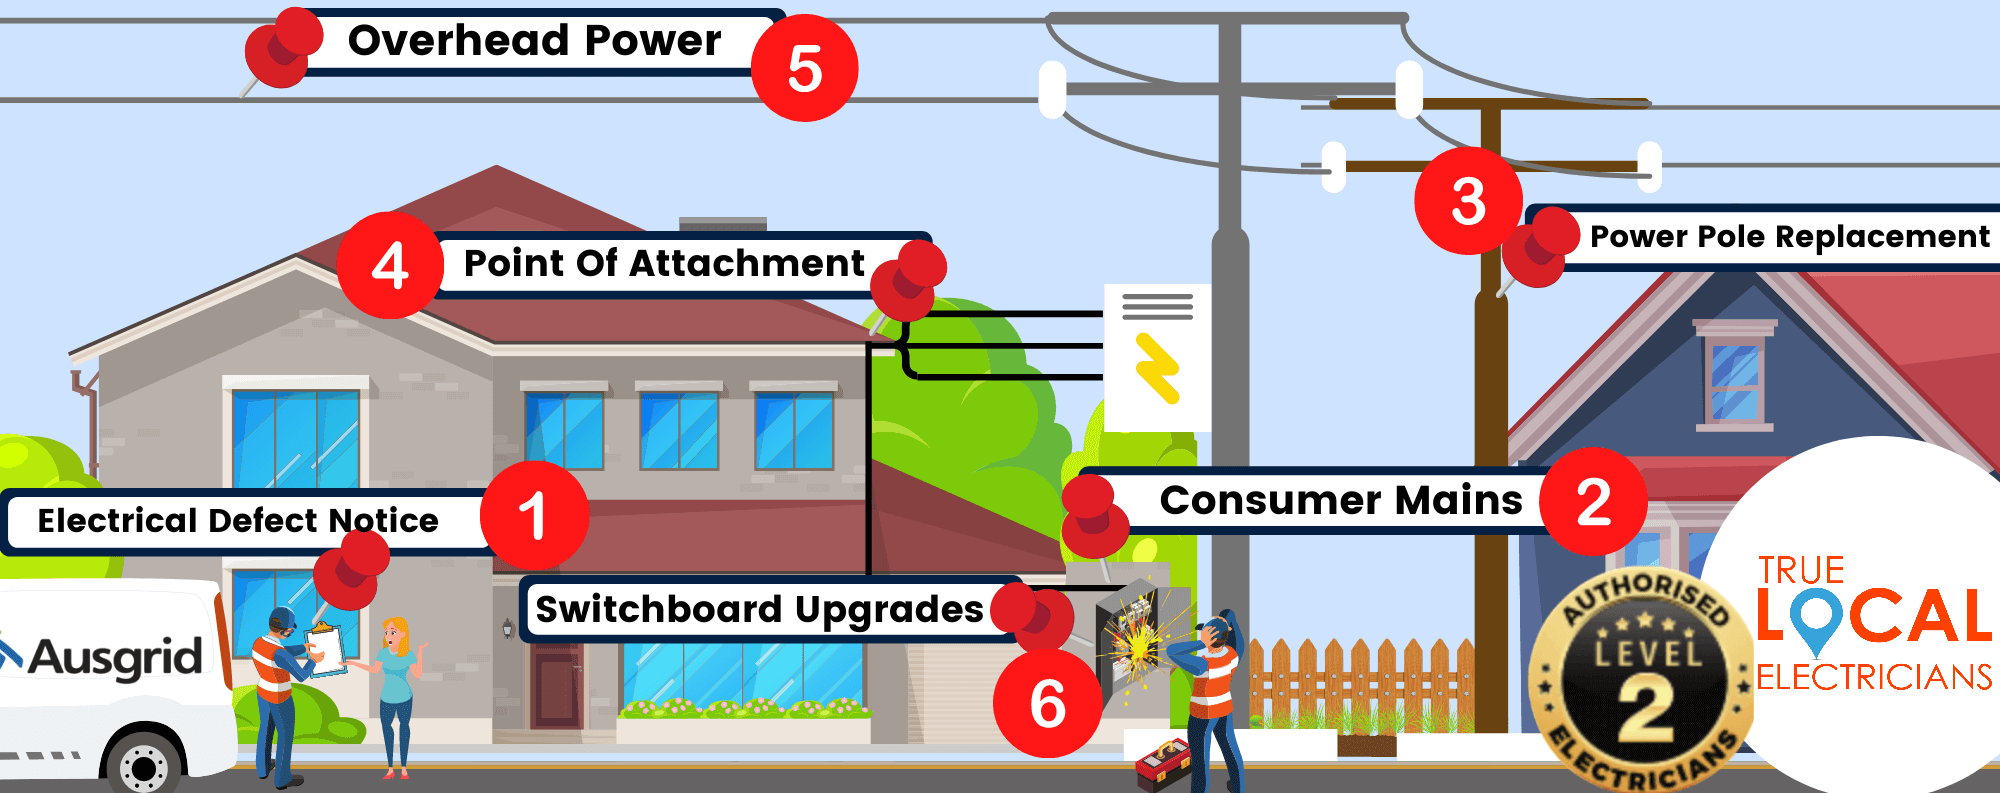 Emergency level 2 electrician from Cronulla. Replacement of consumer mains, private poles and electrical meter panel